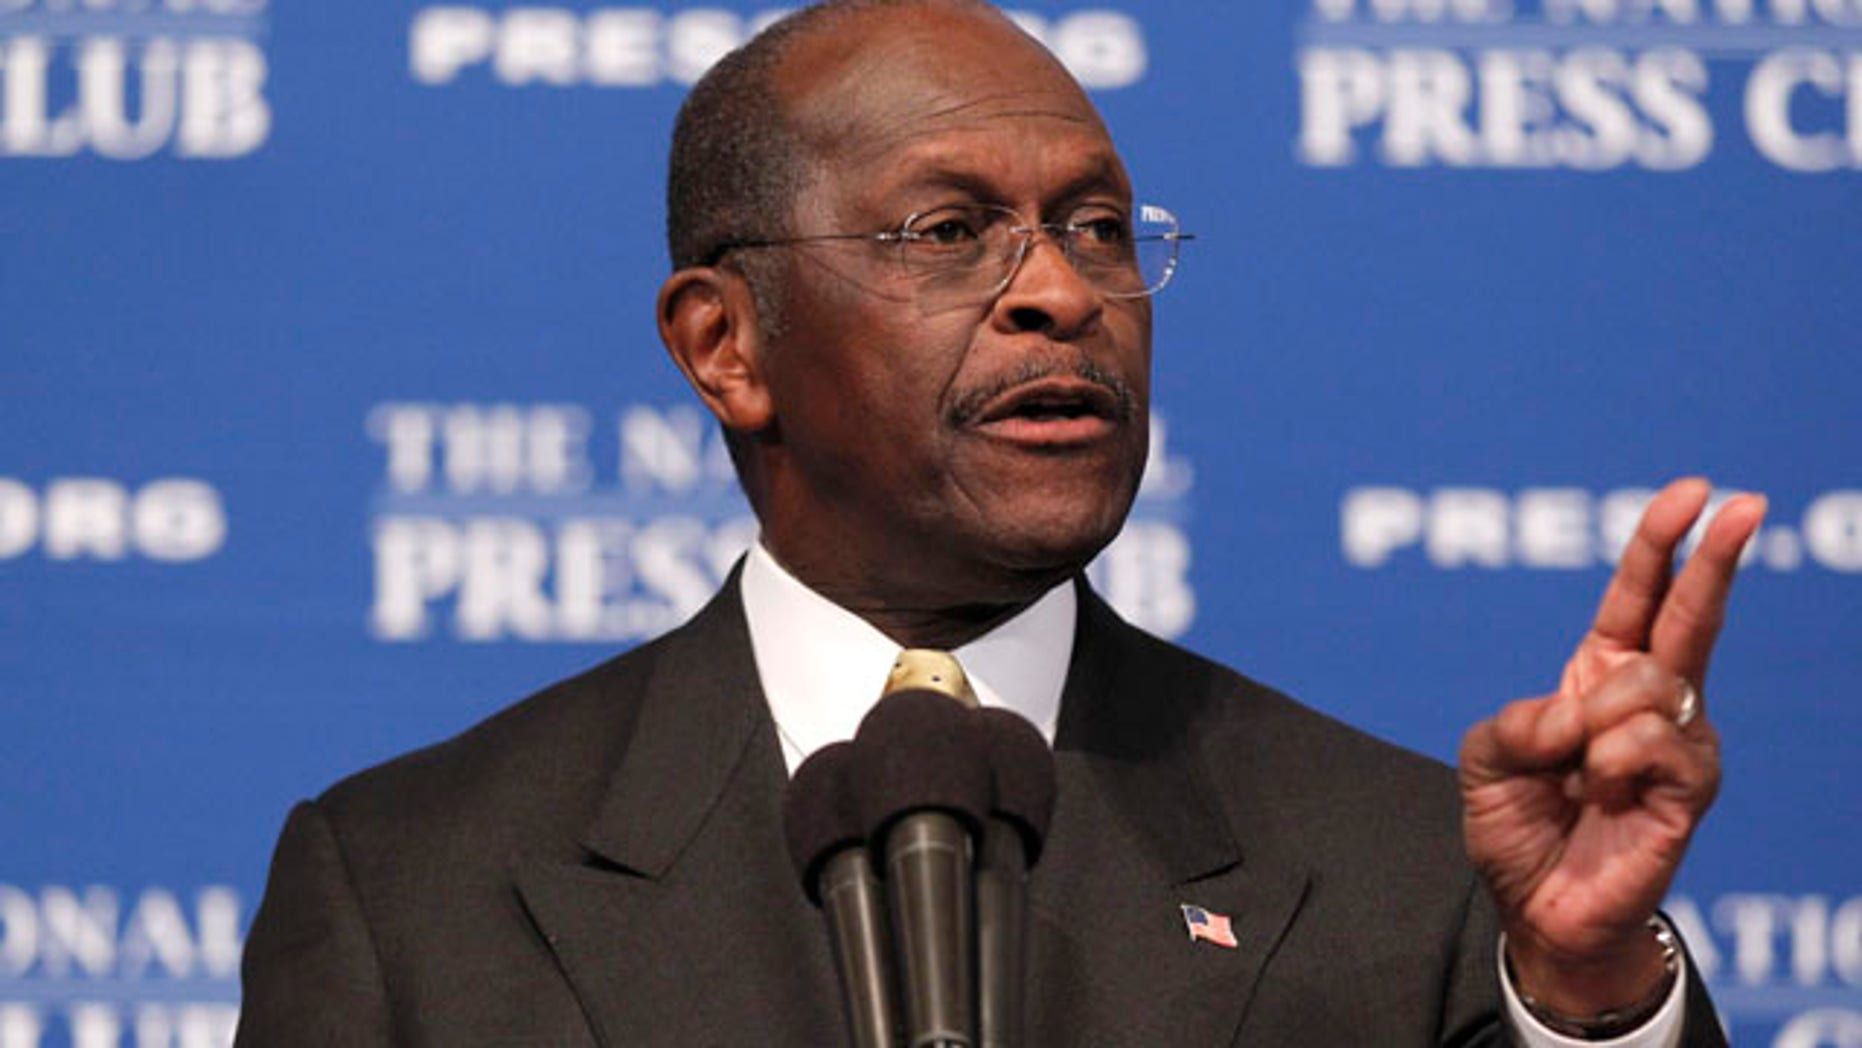 "Republican presidential candidate, Herman Cain answers questions at the National Press Club in Washington, Monday, Oct., 31, 2011. Denying he sexually harassed anyone, Cain said Monday he was falsely accused in the 1990s while he was head of the National Restaurant Association, and he branded revelation of the allegations a ""witch hunt."". (AP Photo/Pablo Martinez Monsivais)"